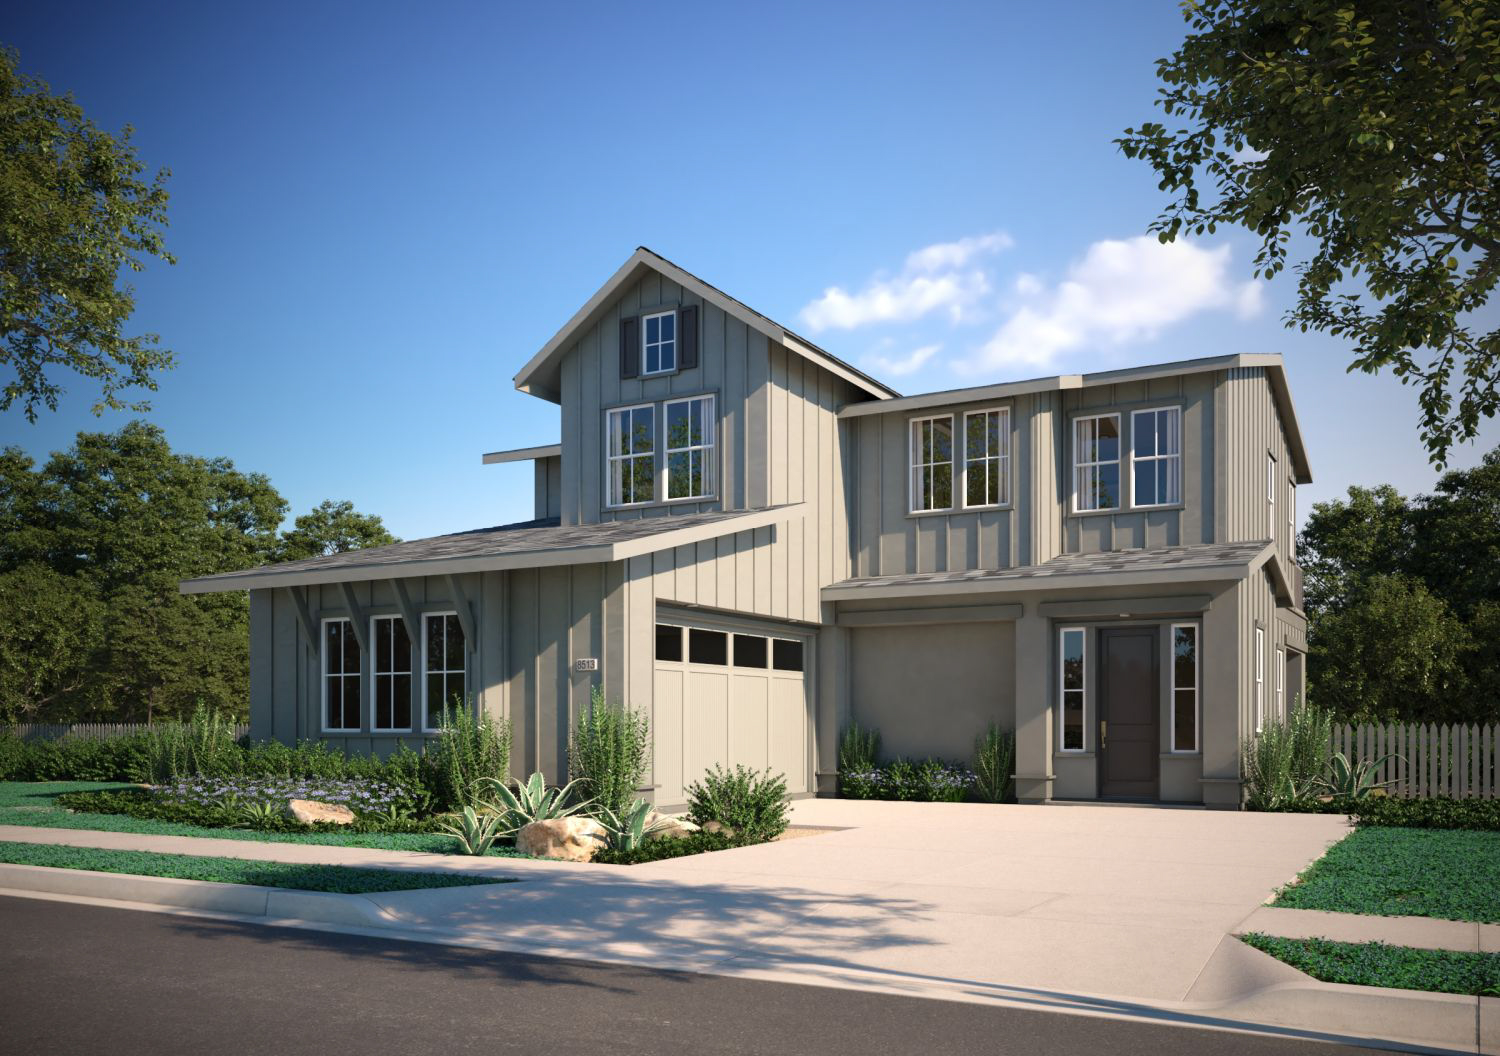 31 Fiddleneck Way, rendering courtesy Landsea Homes